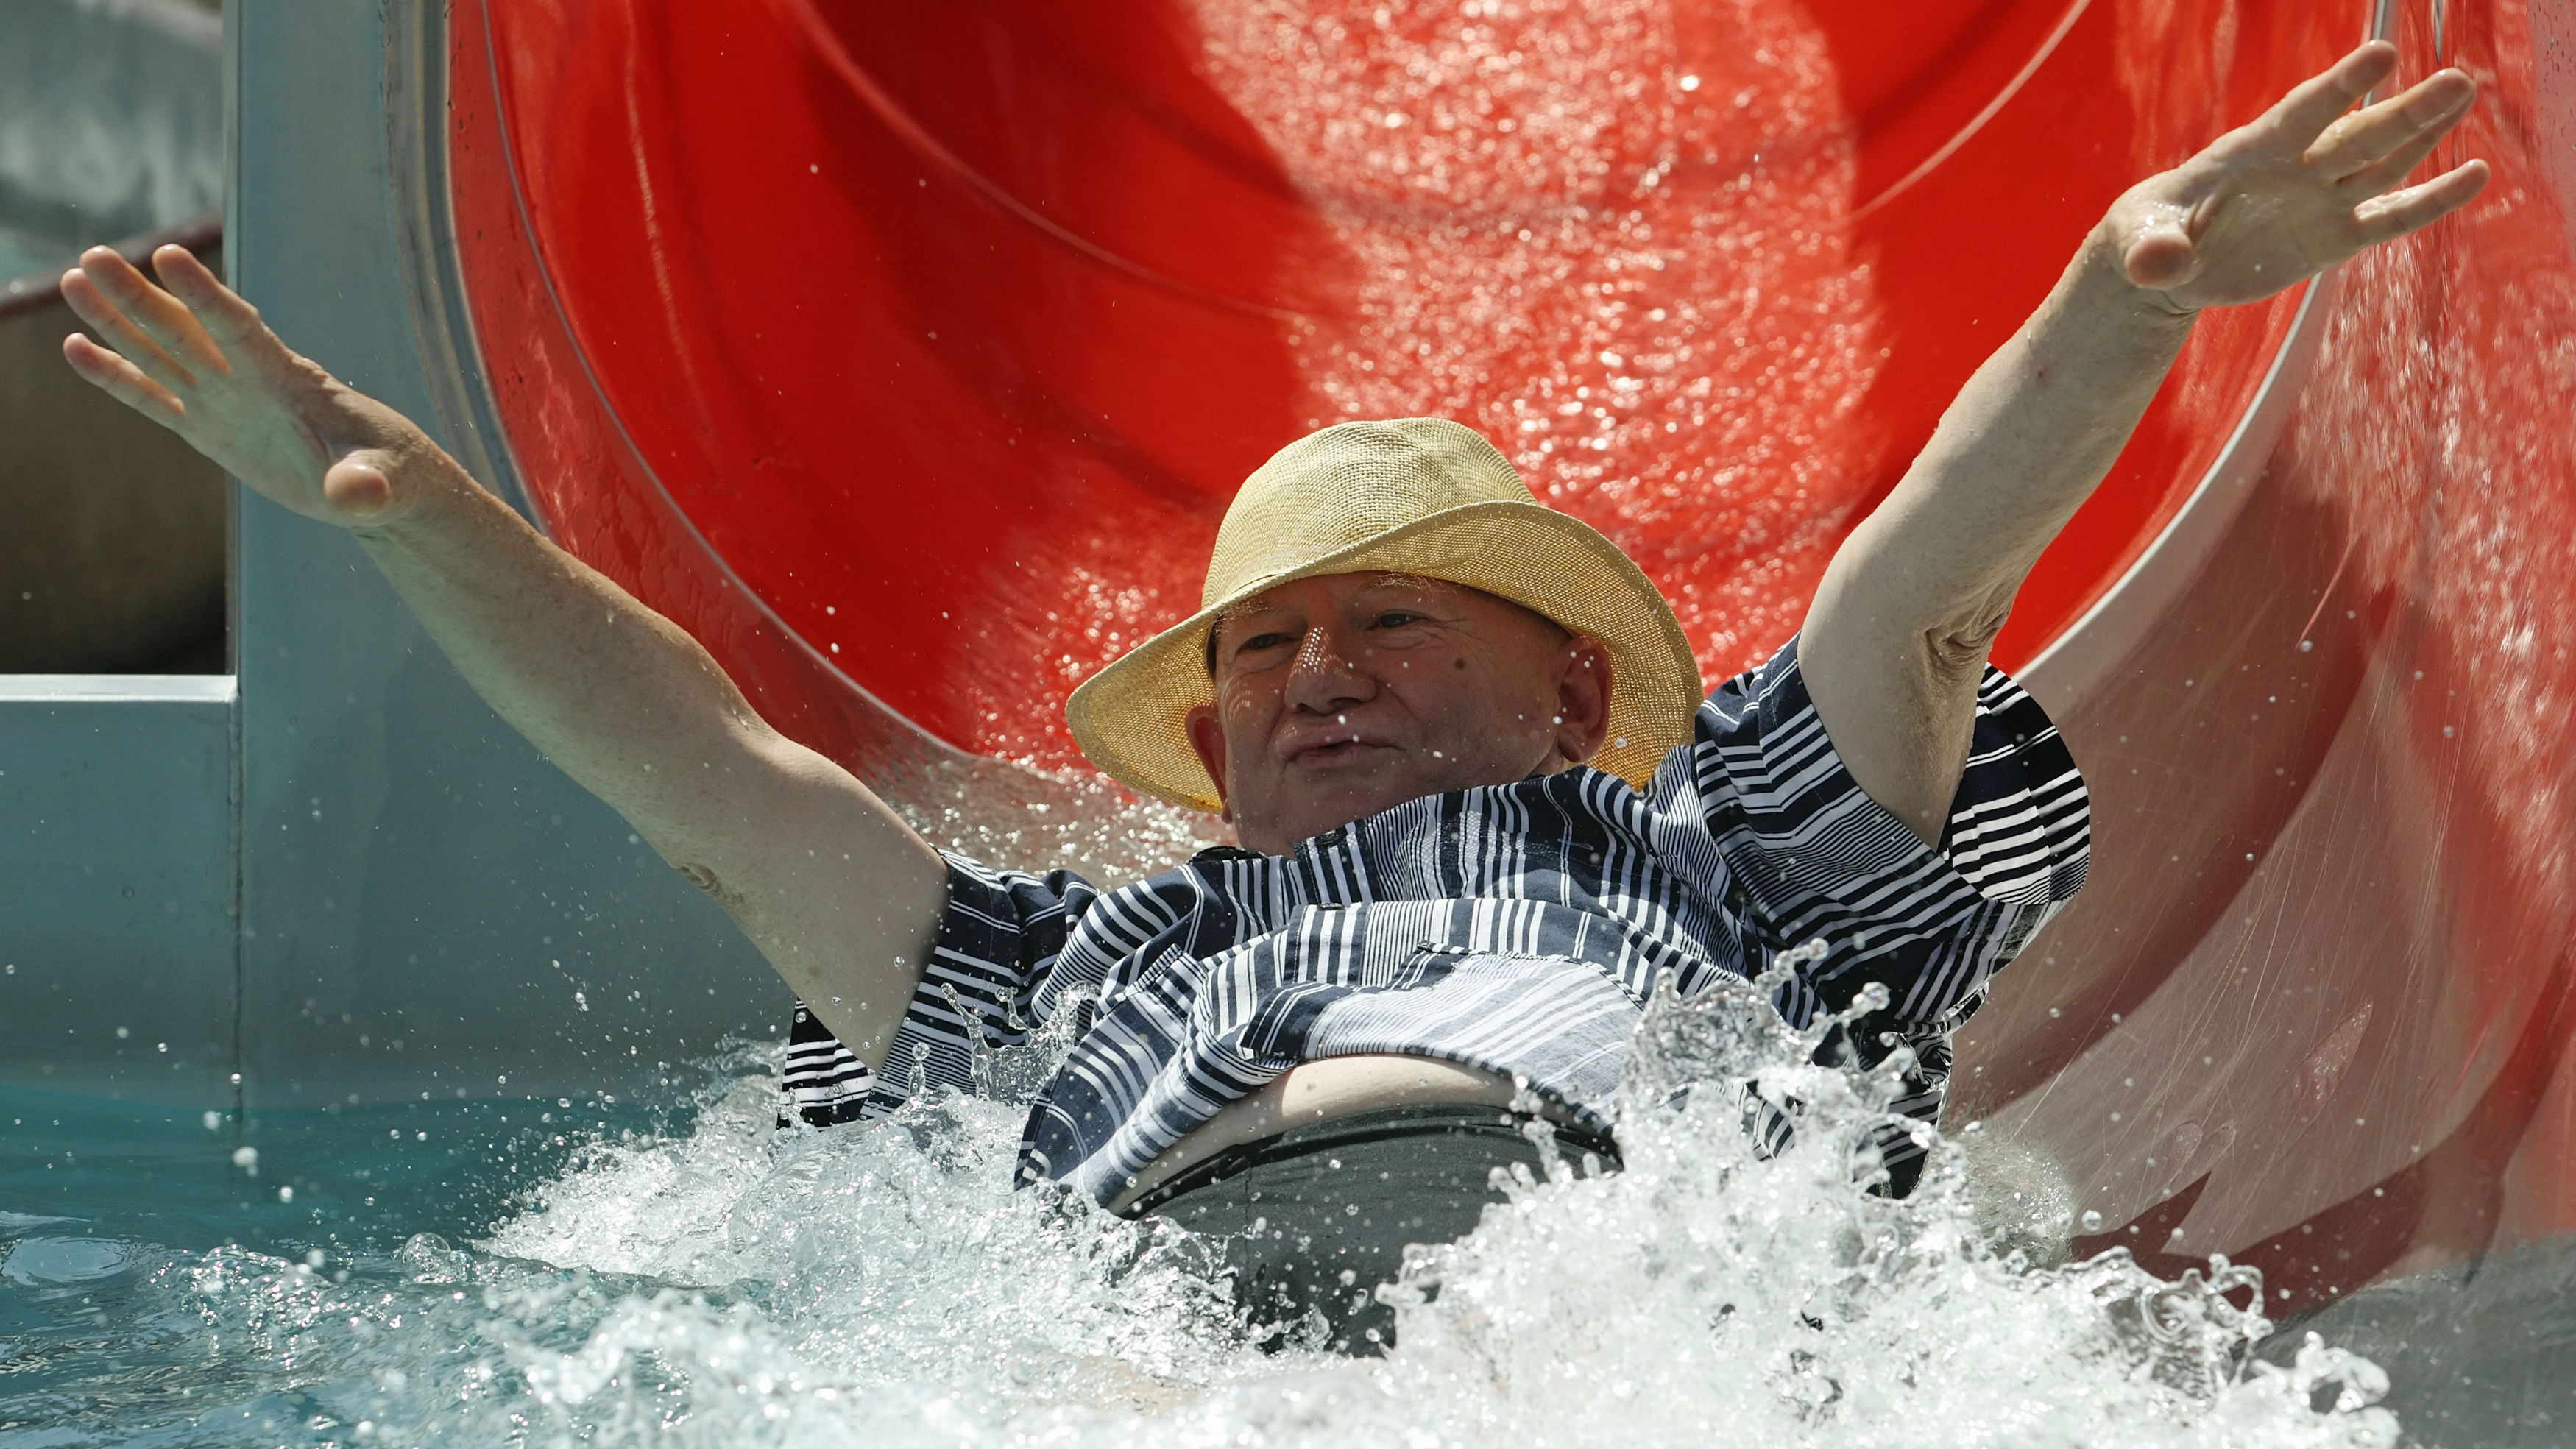 An elderly man speeds down a water chute at Kongressbad public swimming bath in Vienna August 8, 2013. Temperatures were expected to rise up to 39 degrees Celsius (102 Fahrenheit) on Thursday, national weather service agency ZAMG reported.